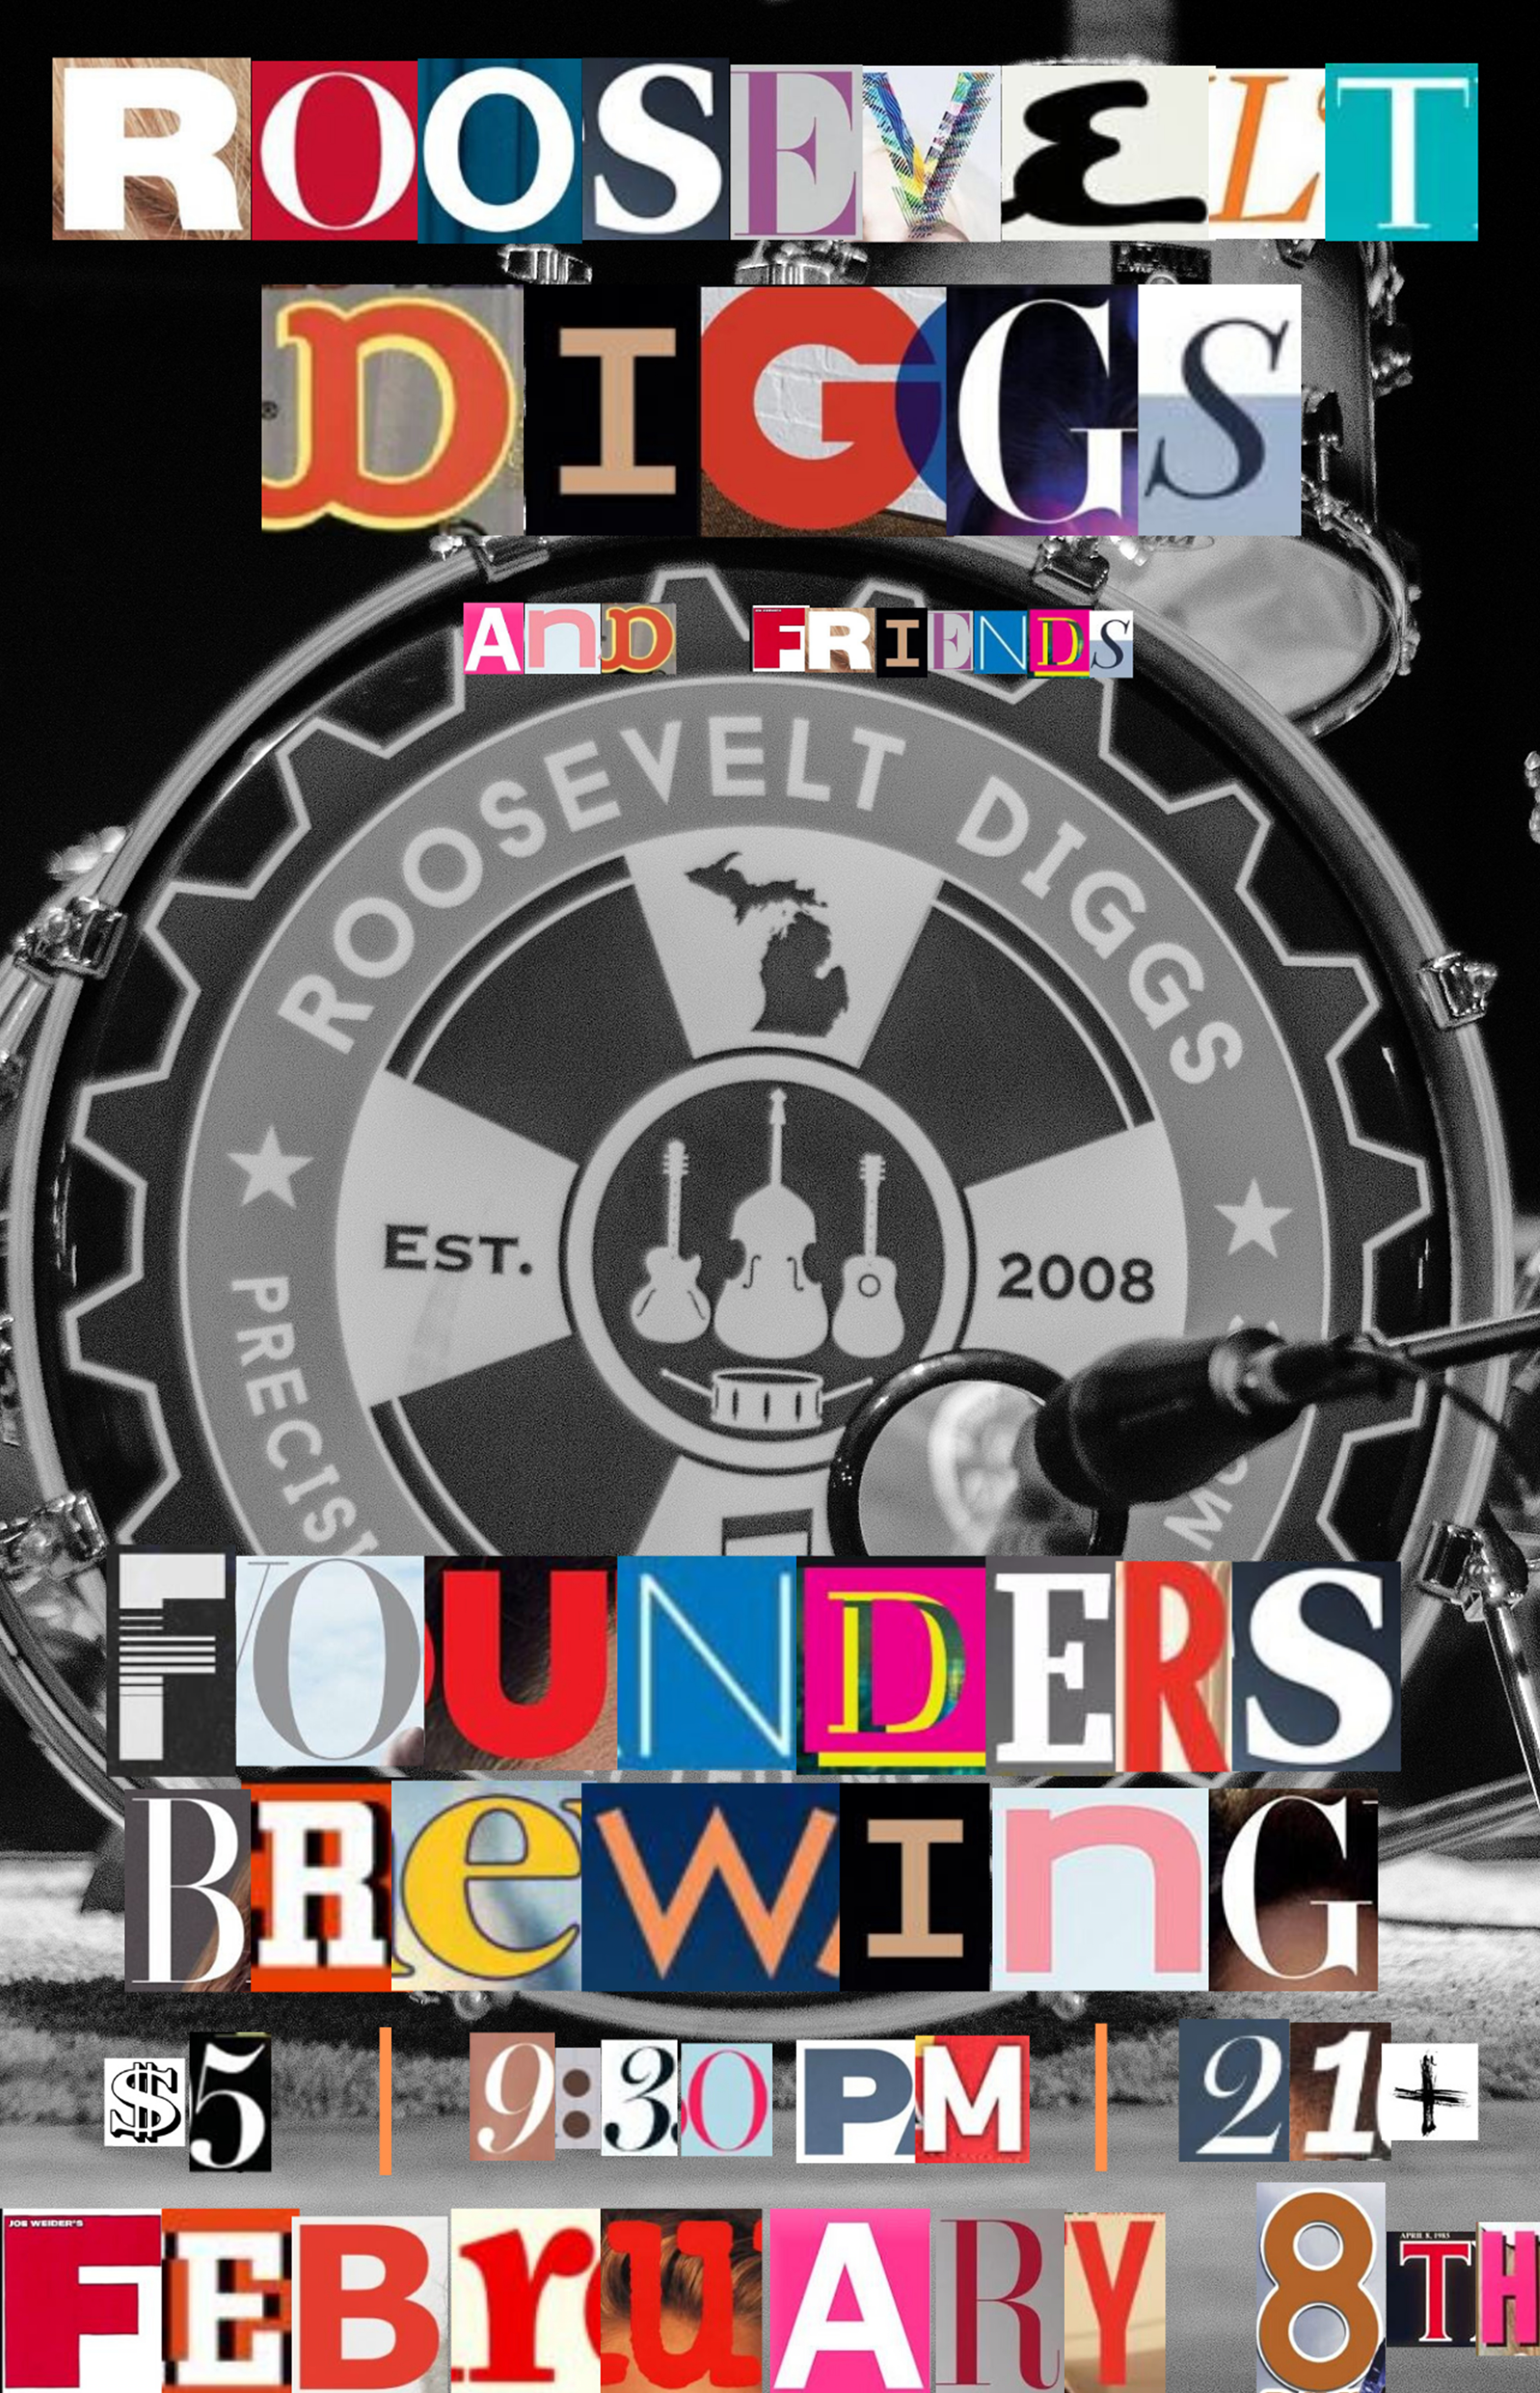 Roosevelt Diggs and Friends event poster hosted by Founders Brewing Co.